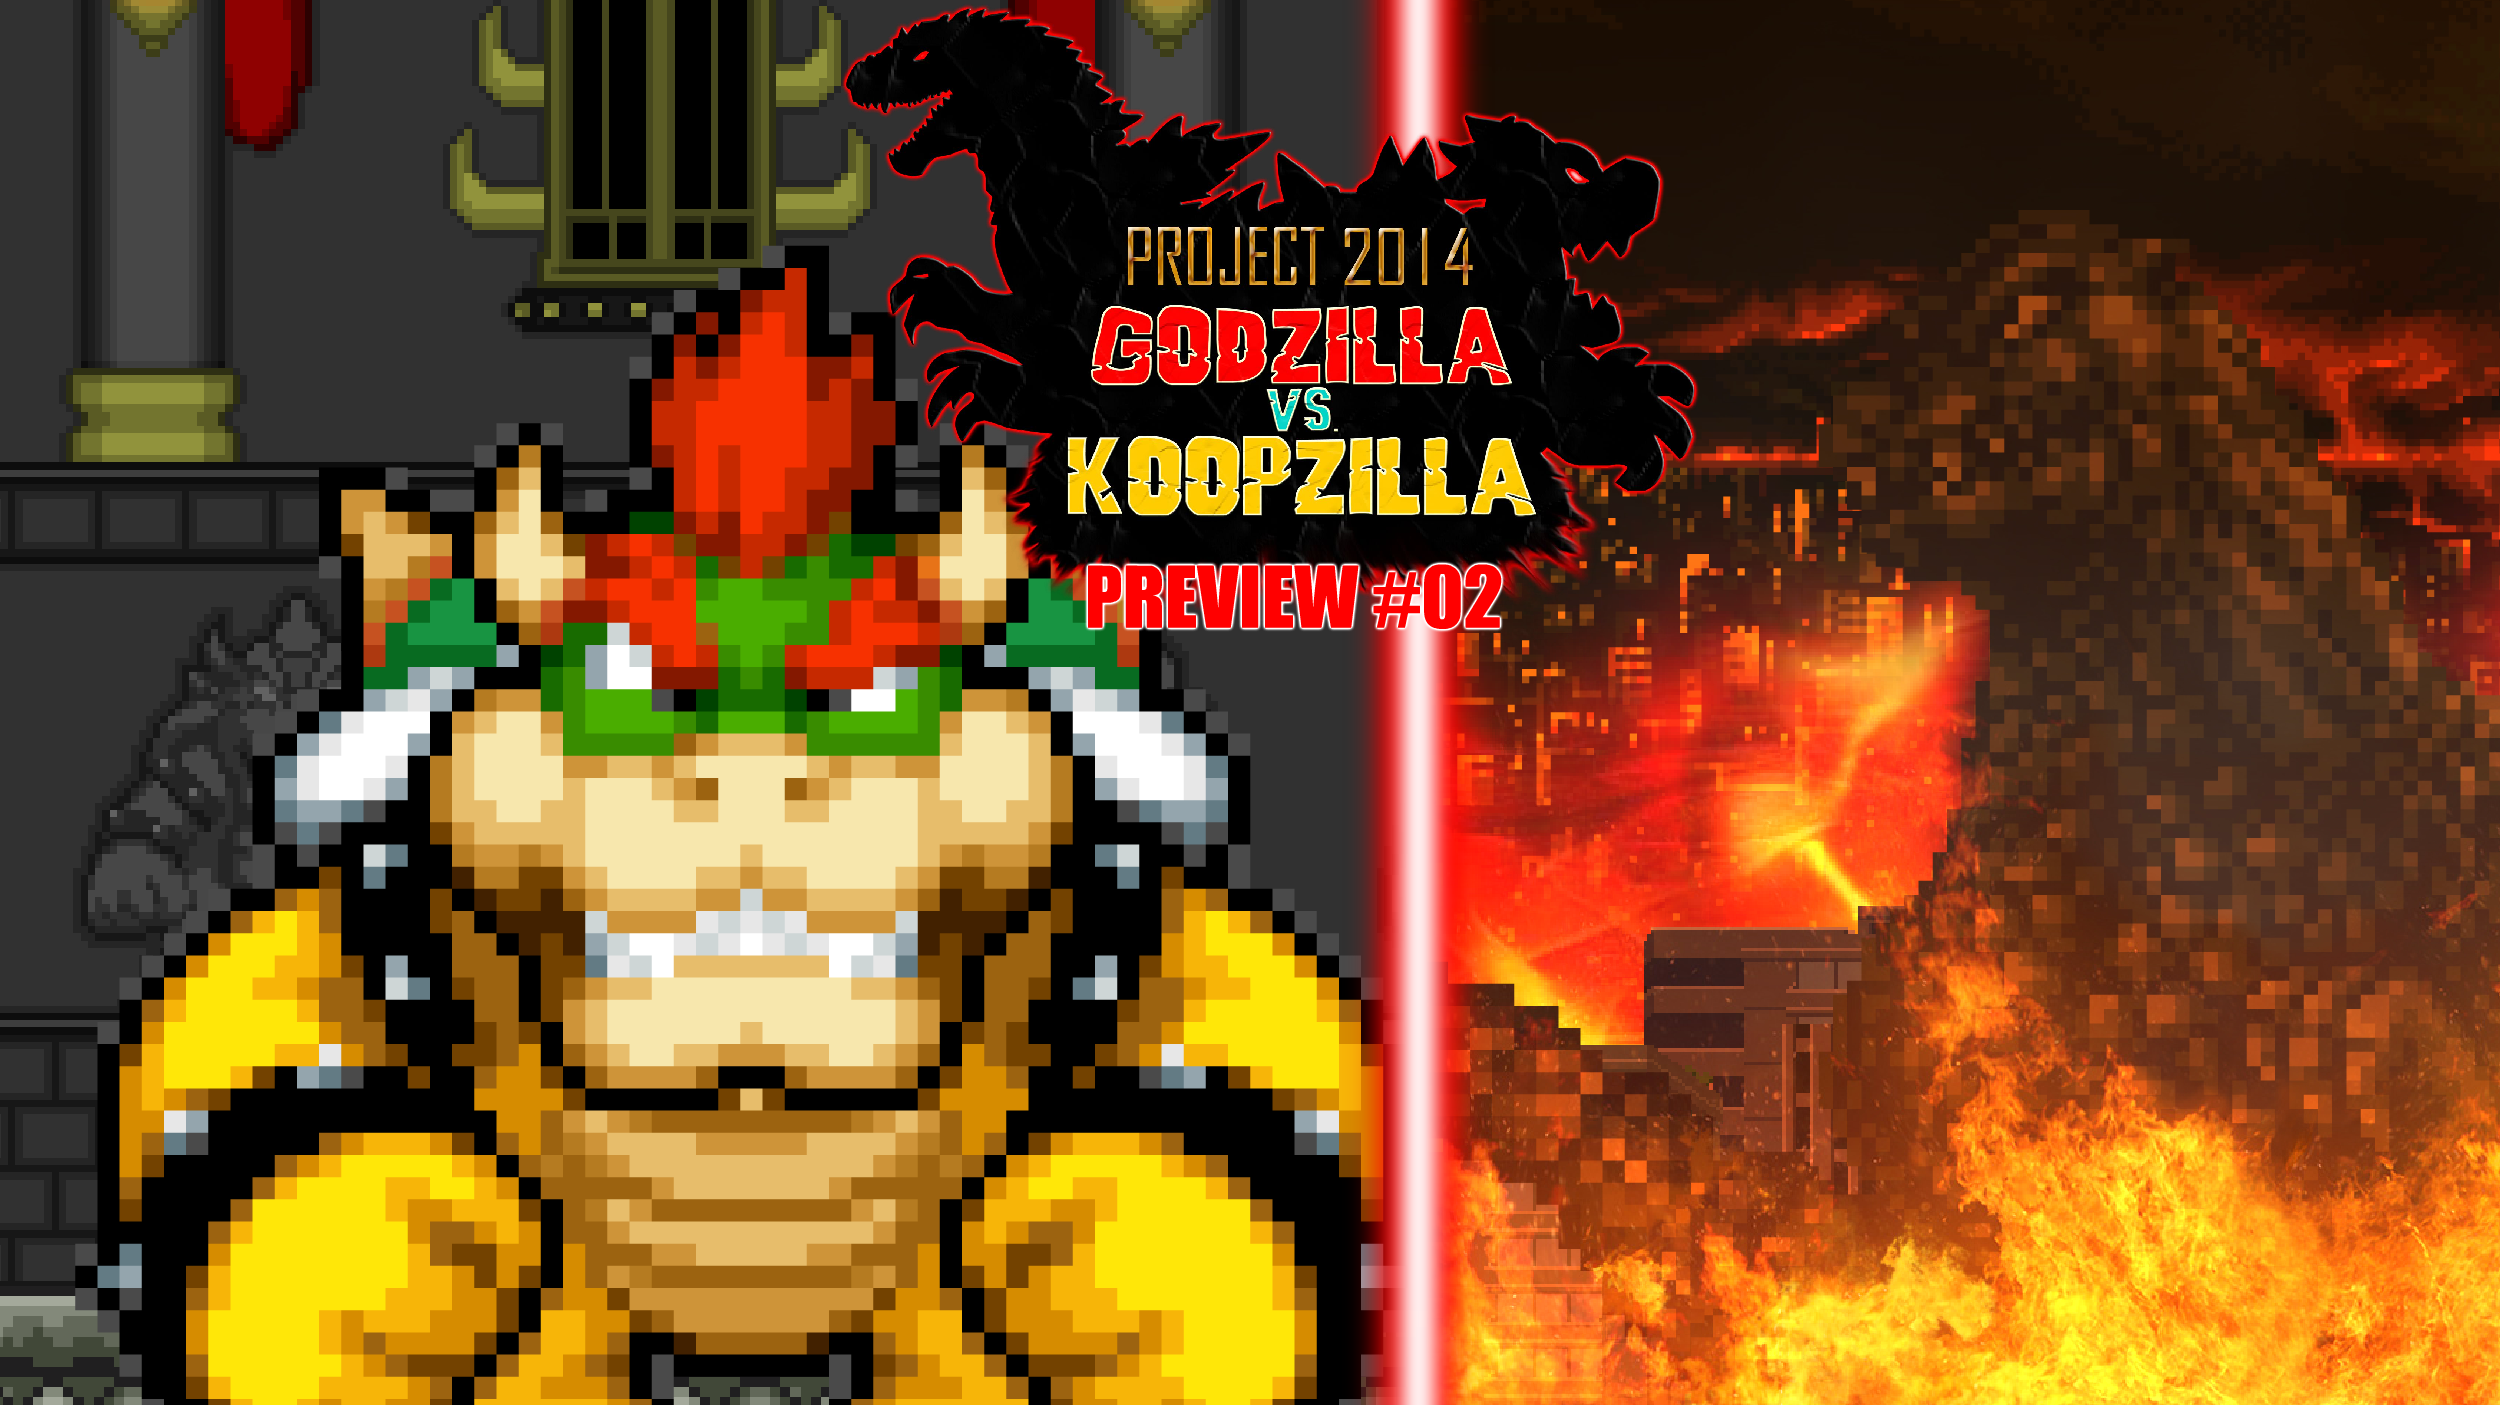 Project 2014 Godzilla vs Koopzilla (2014)